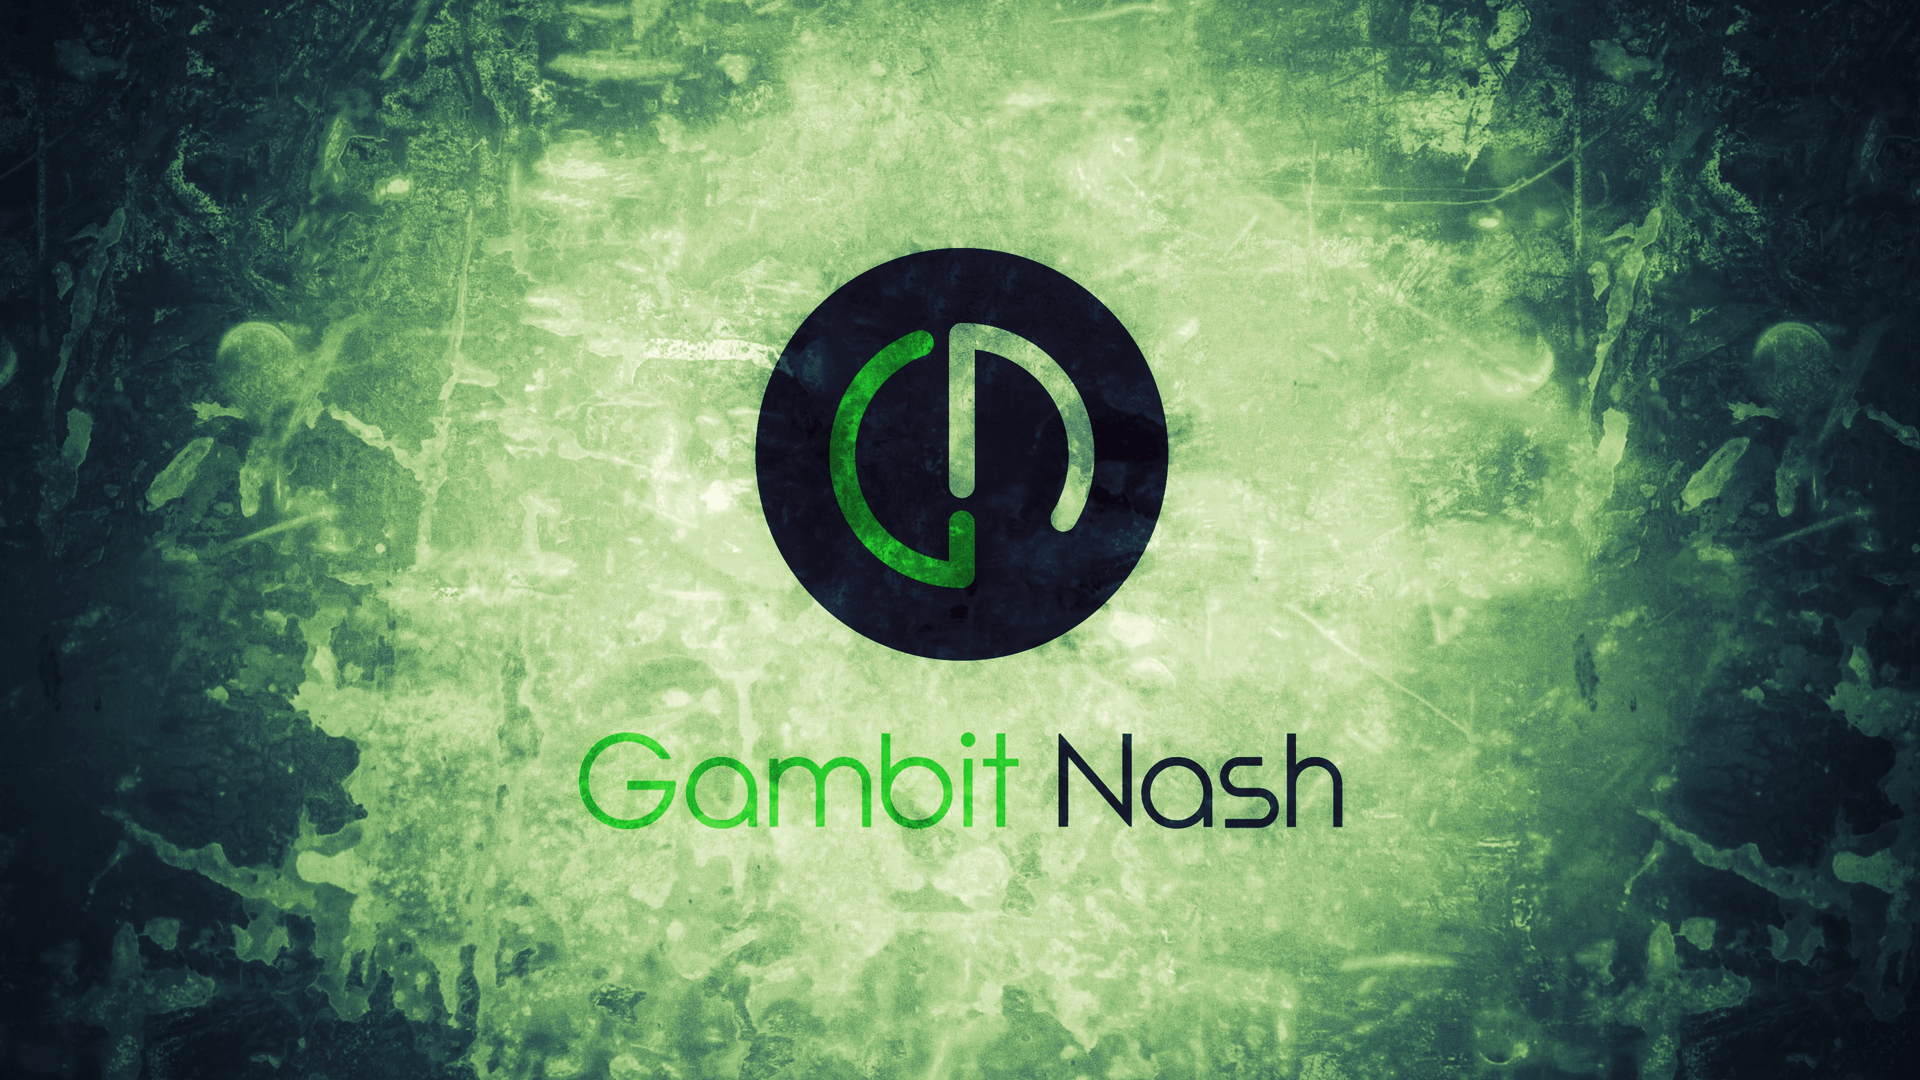 Welcome, We are Gambit Nash